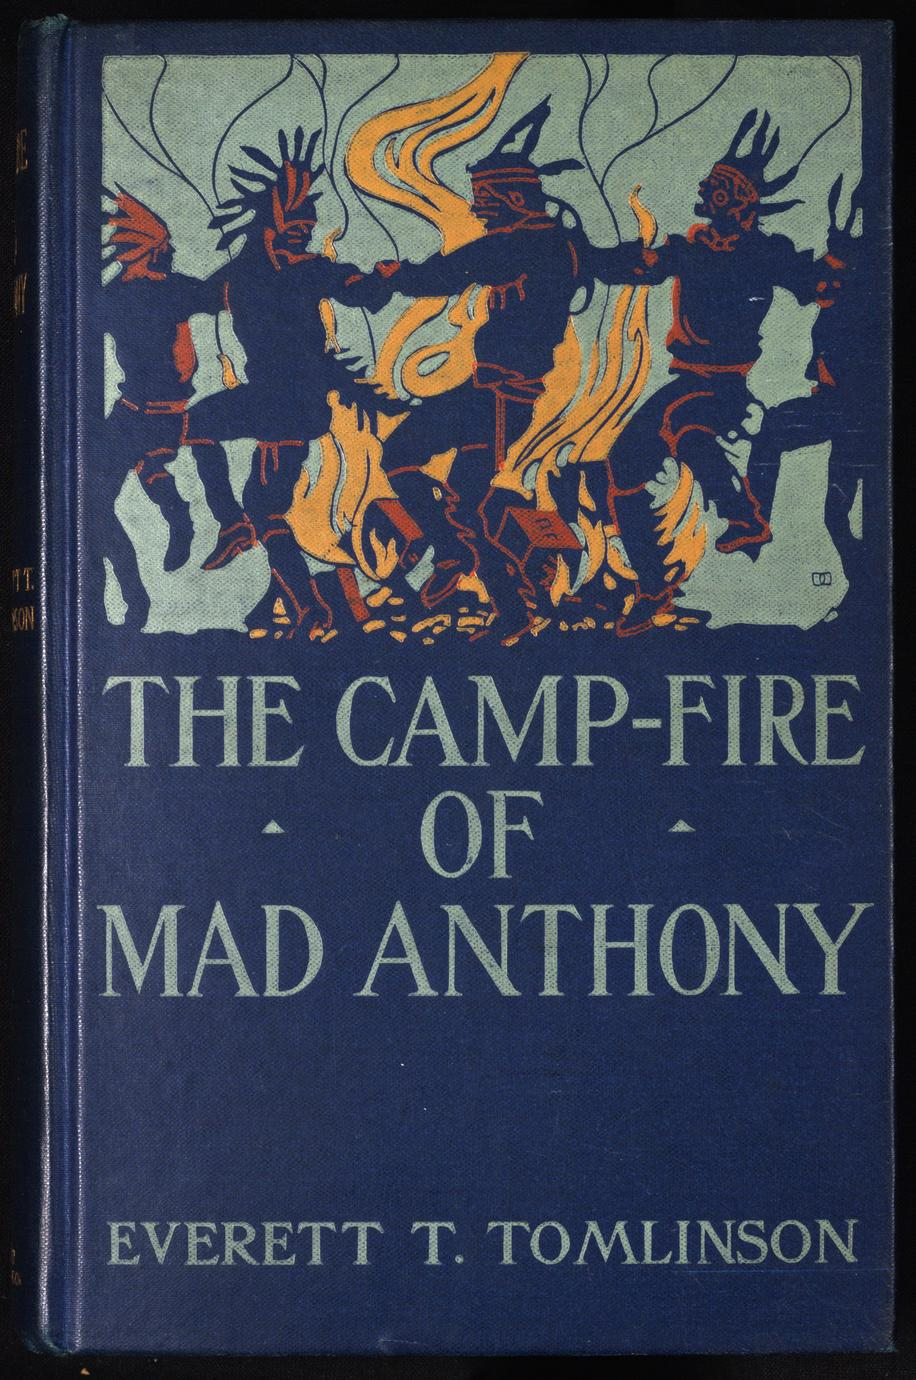 The camp-fire of Mad Anthony (1 of 3)